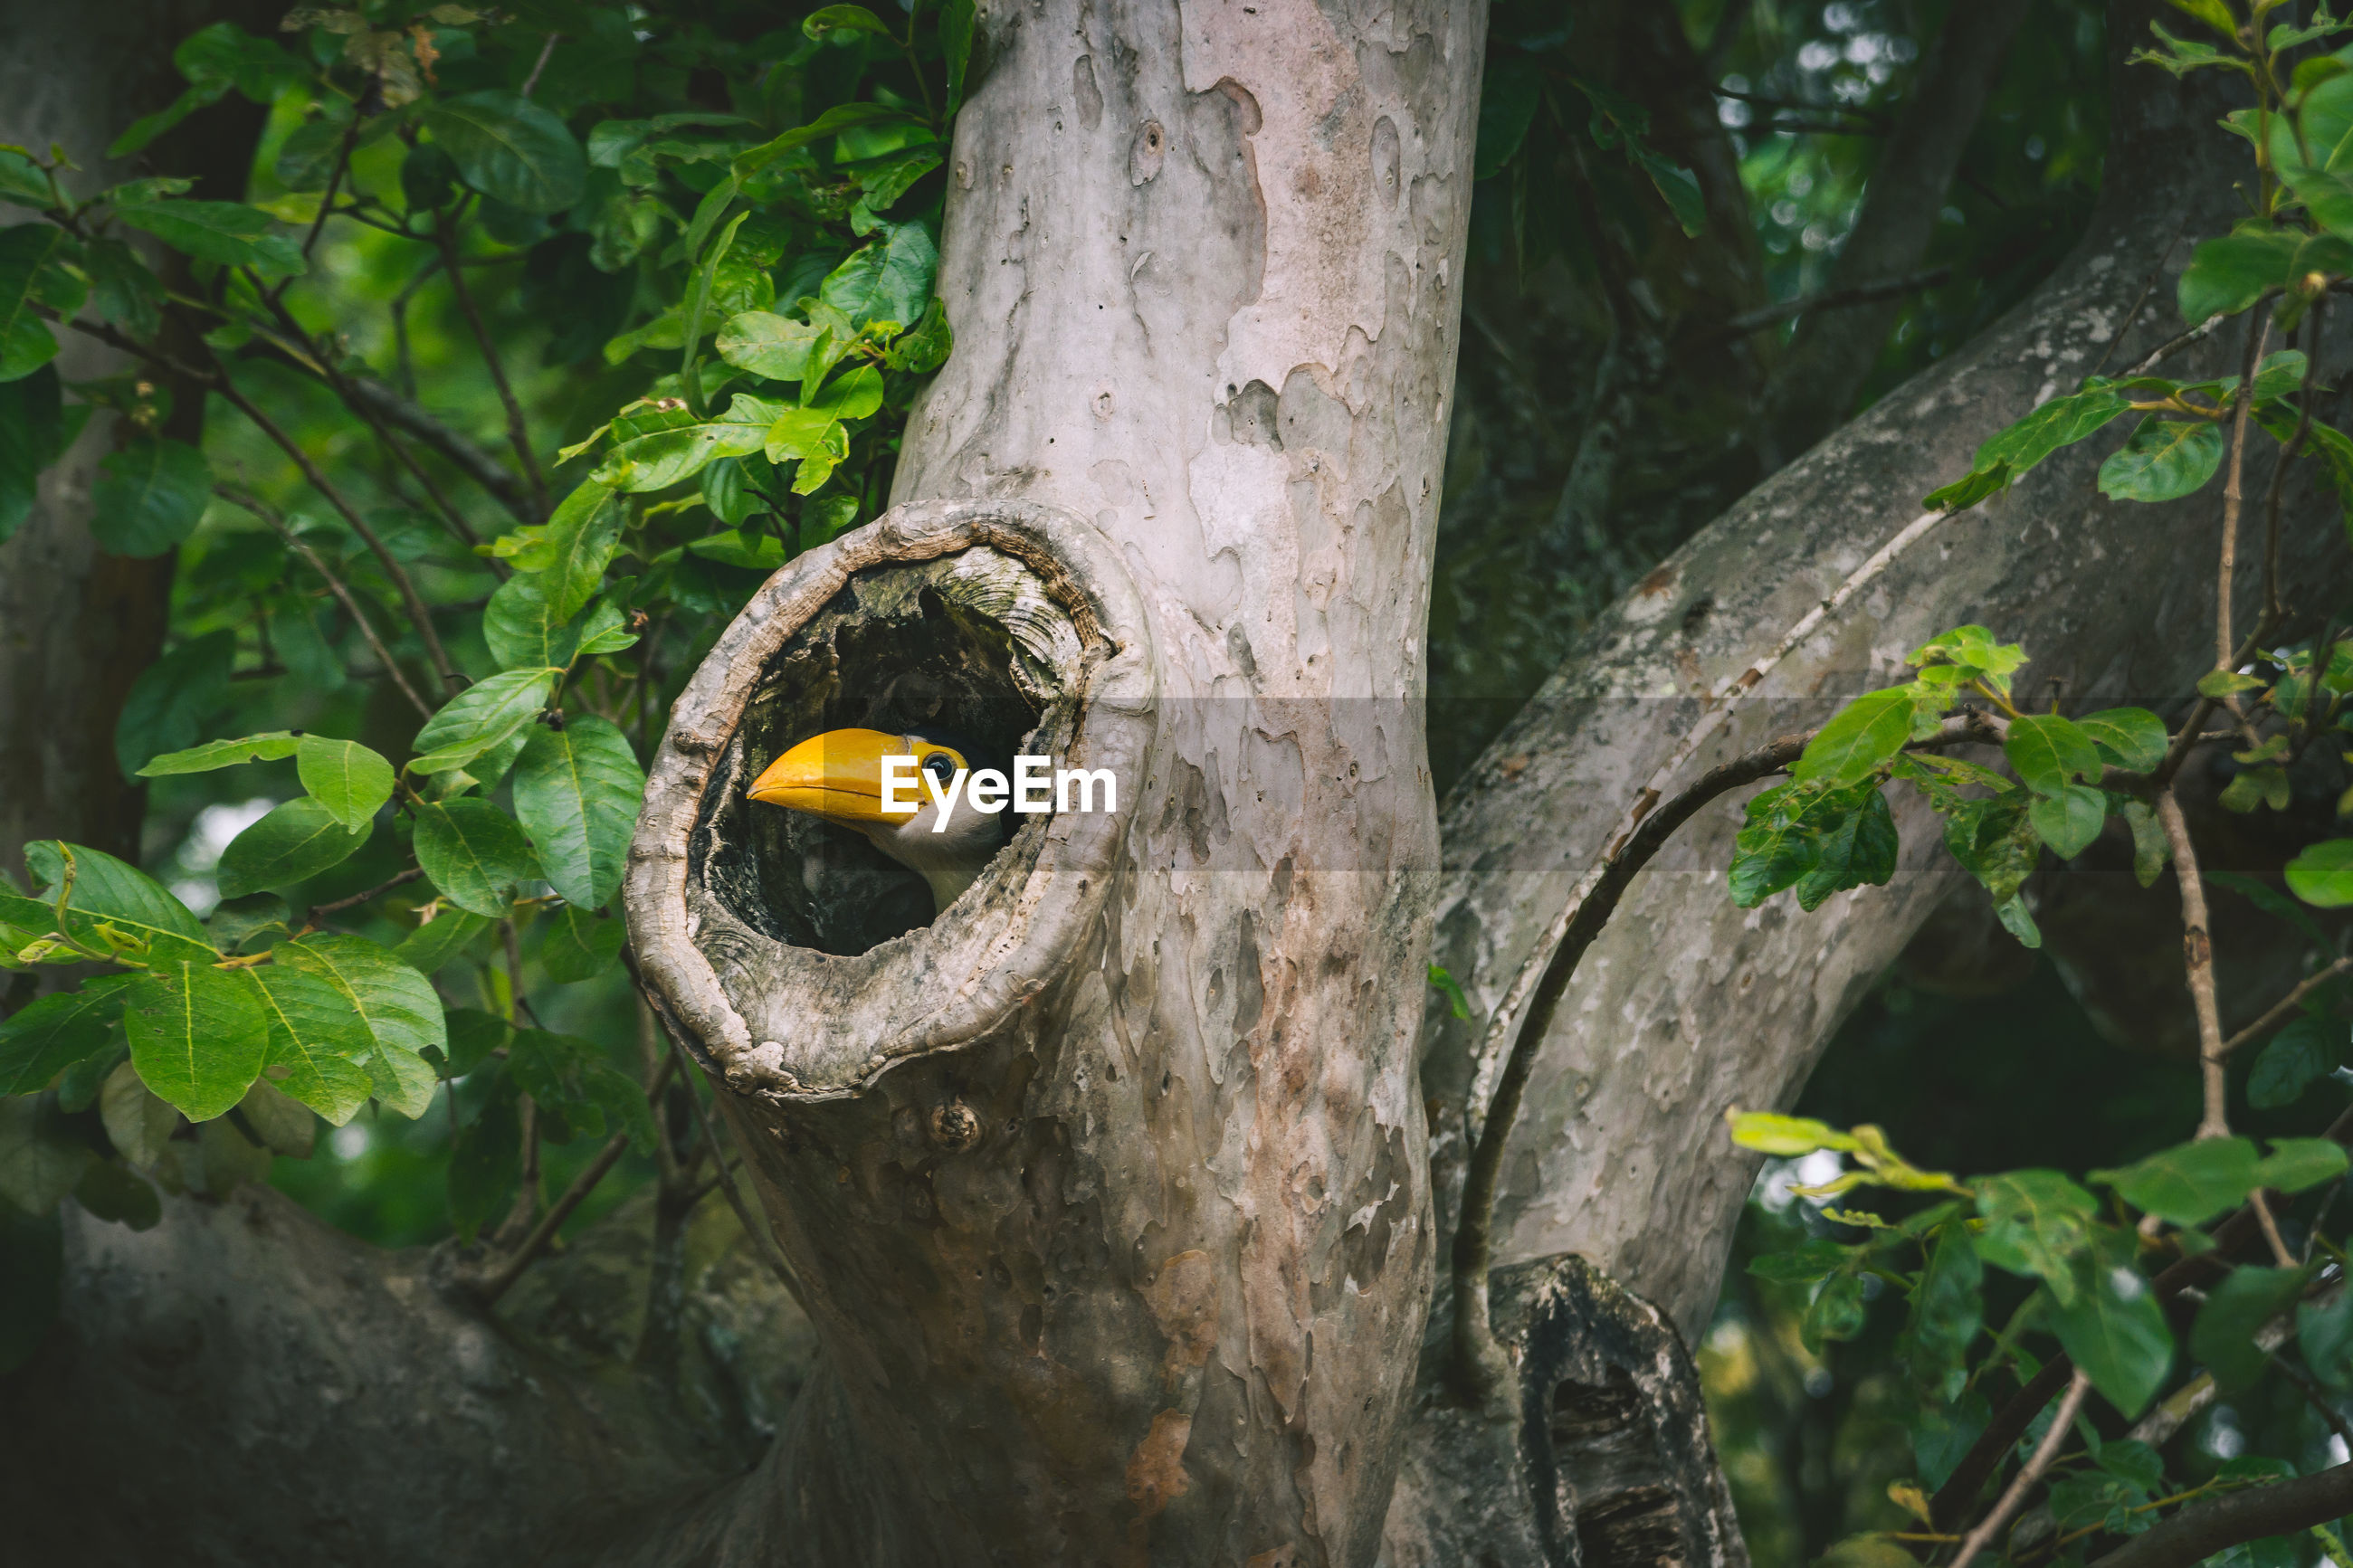 Close-up of bird perching in tree trunk